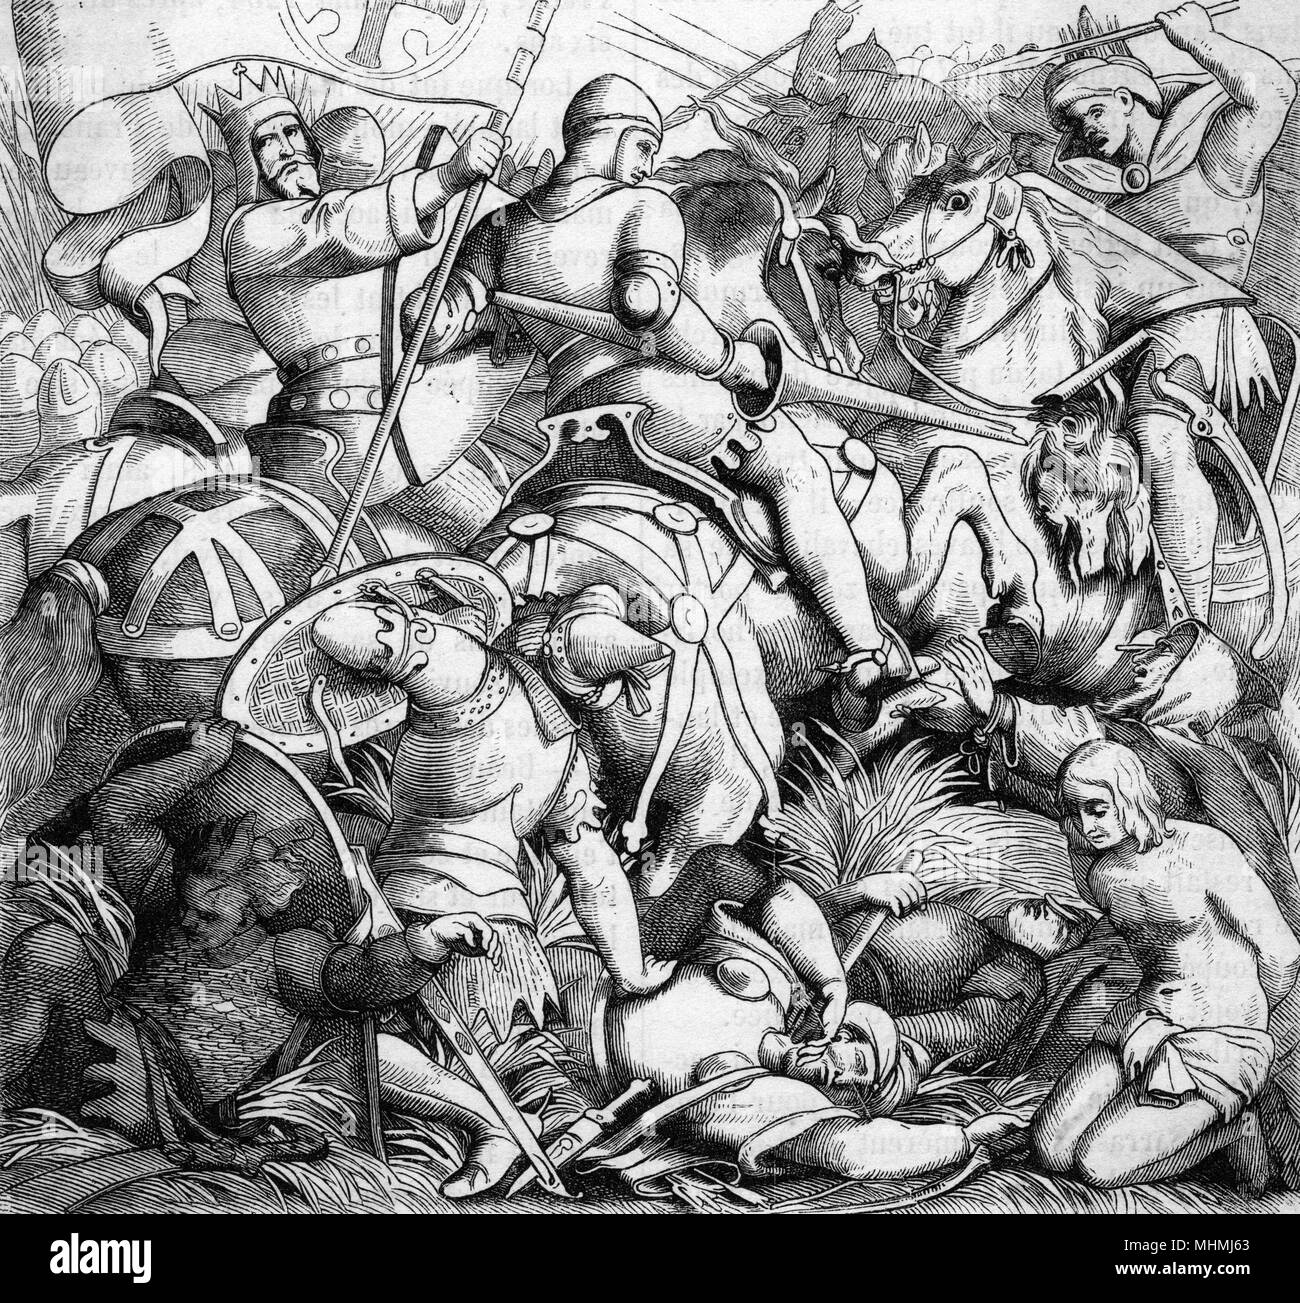 RONCEVAUX Roland and his companions are killed fighting the Moors       Date: 778 - Stock Image